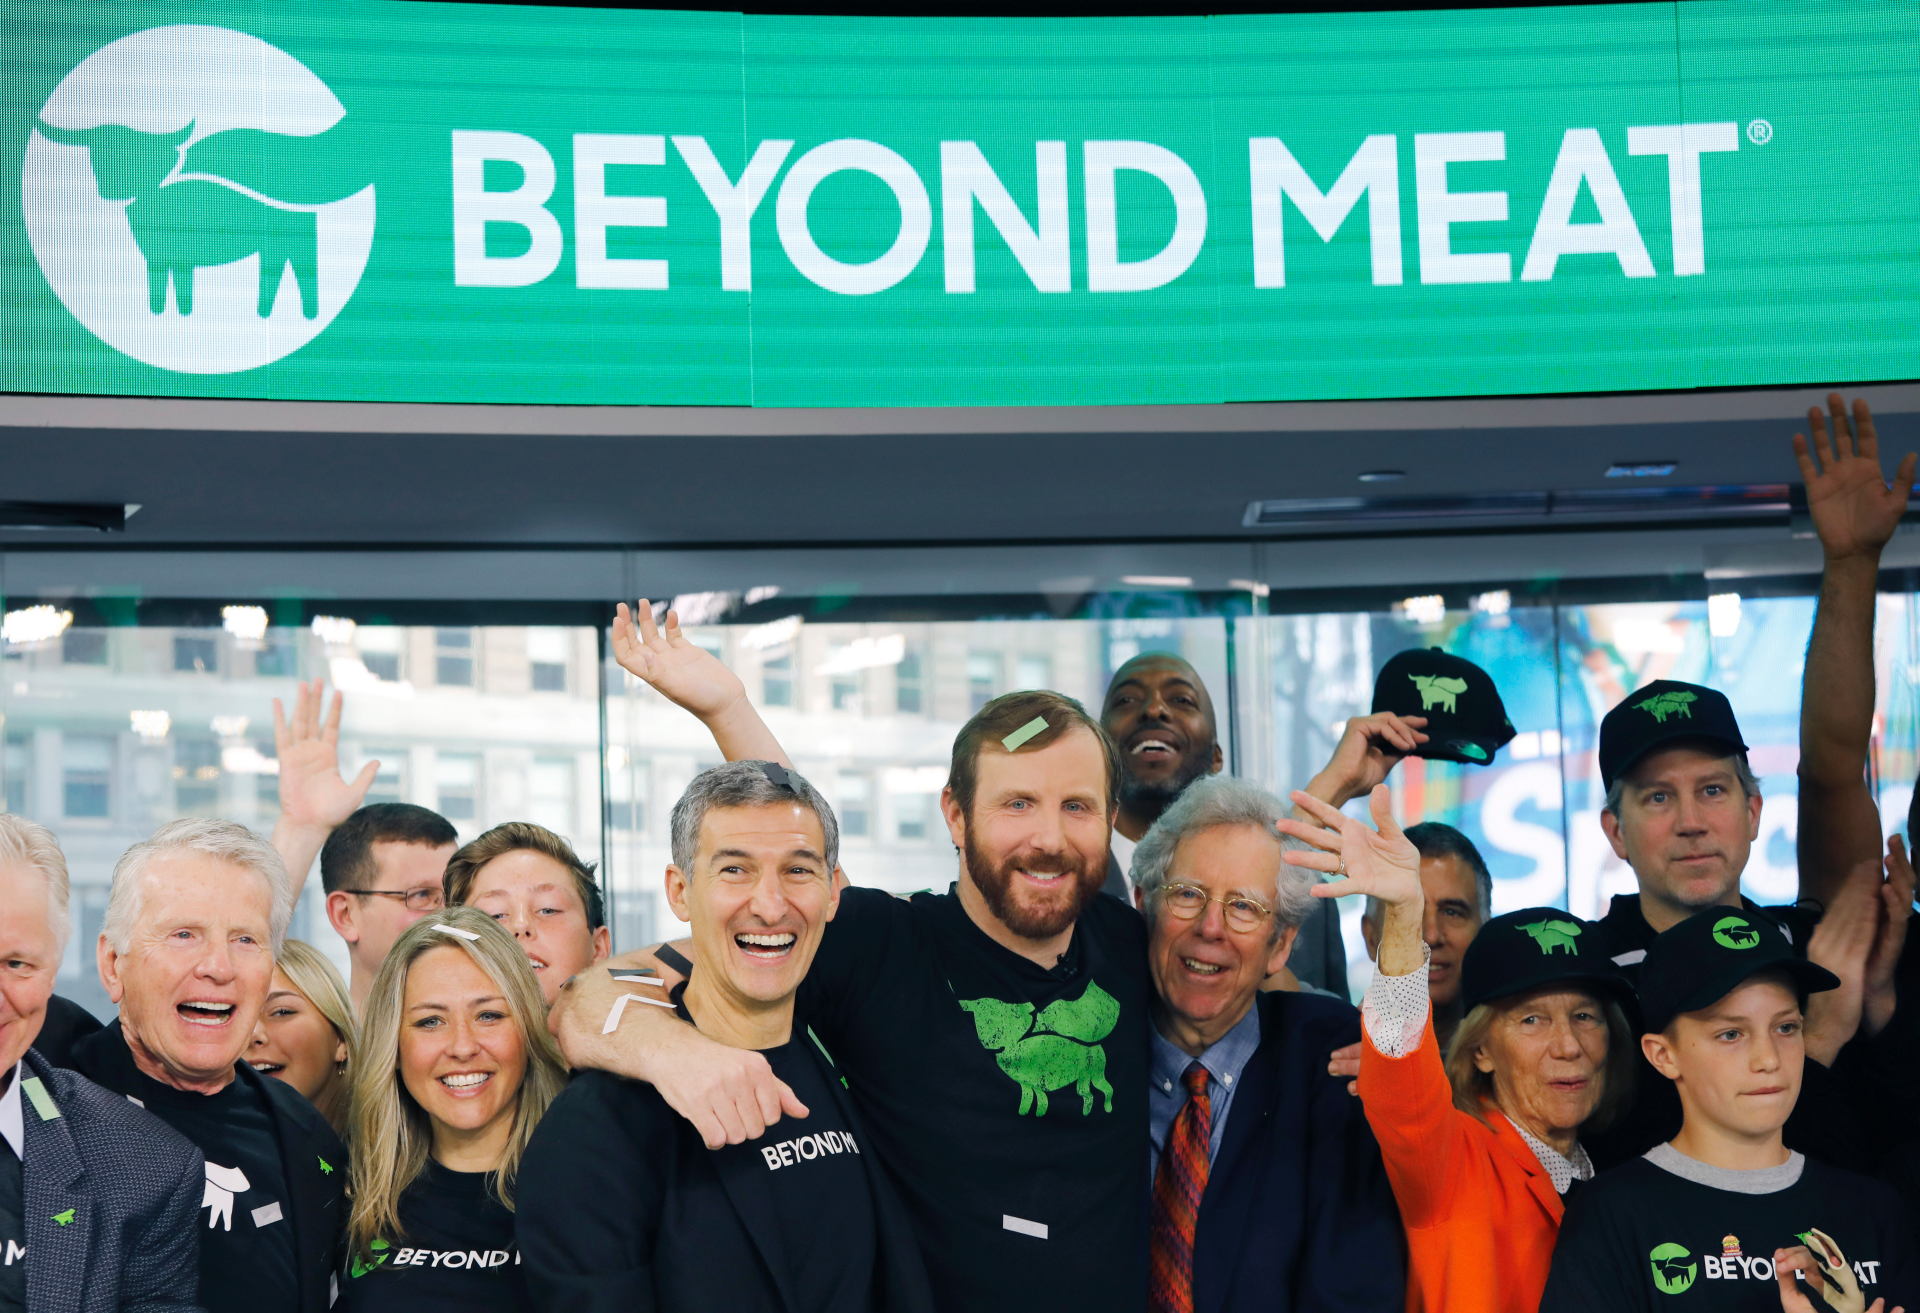 Beyond meat ipo 2020